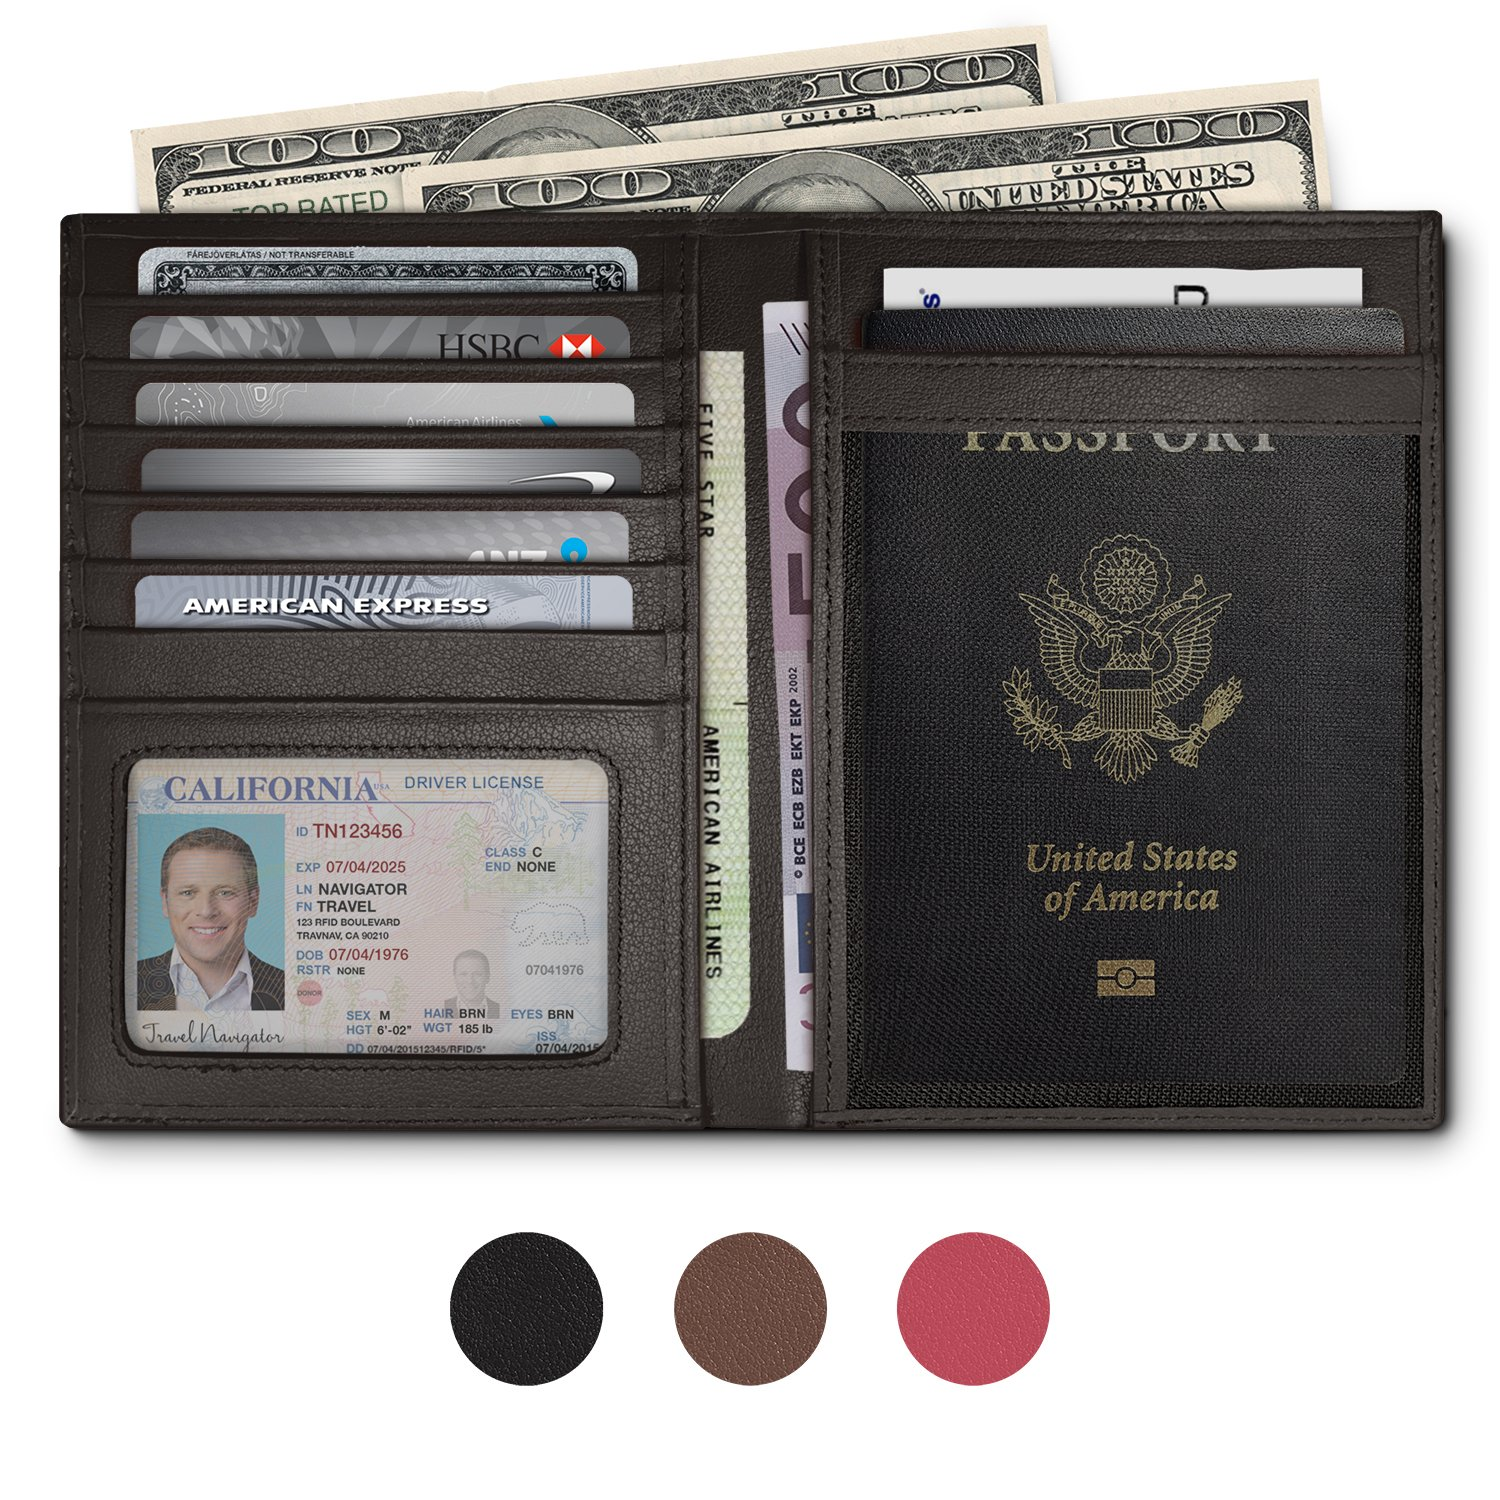 RFID Blocking Leather Passport Holder For Men and Women - Black